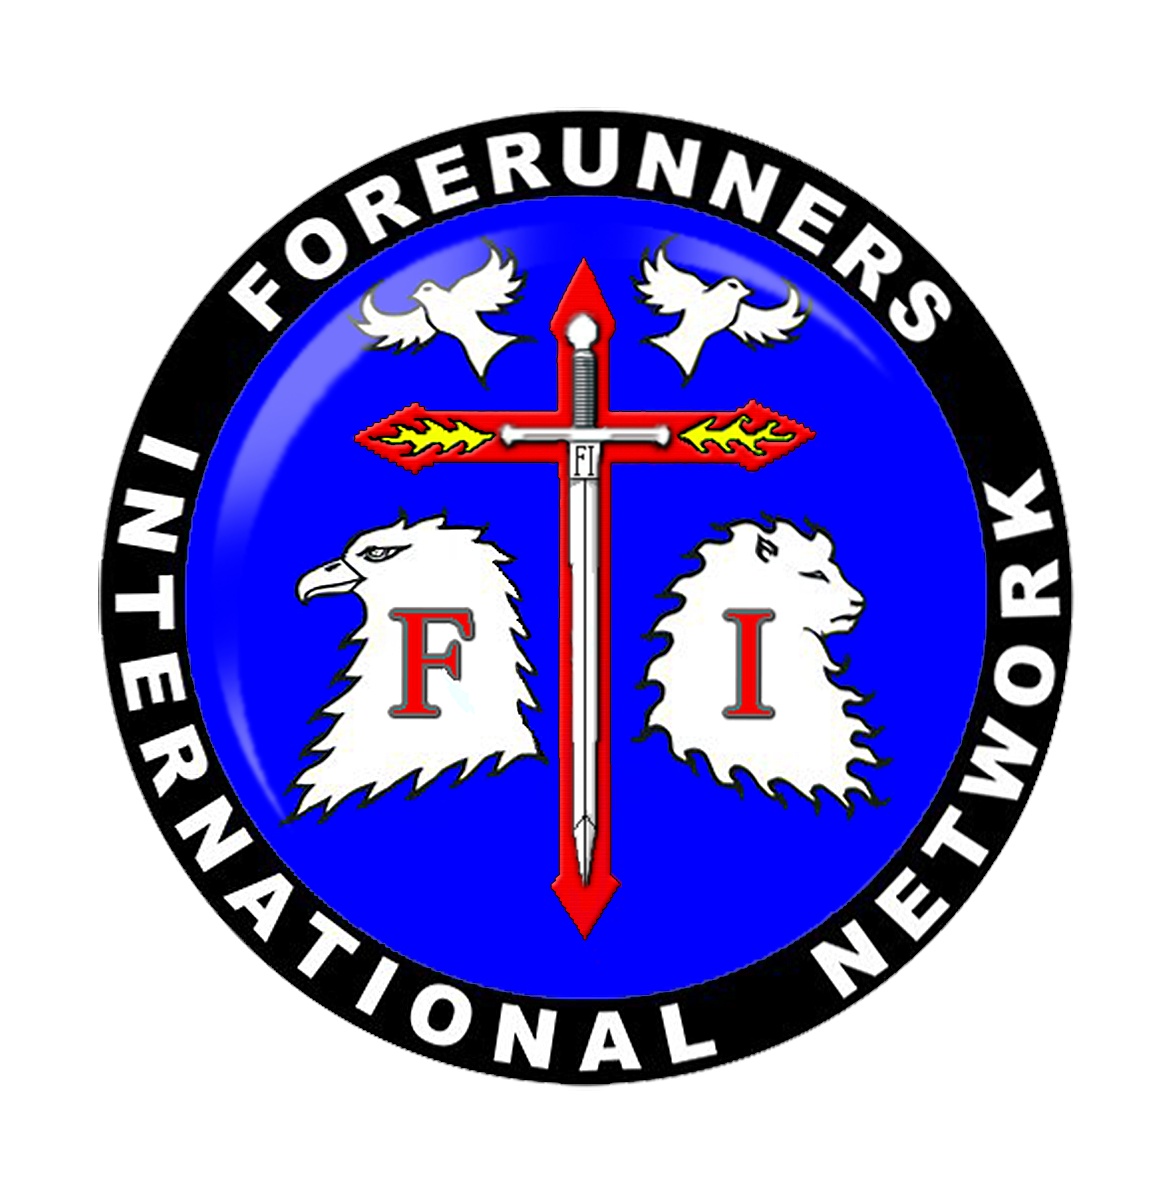 Forerunners International